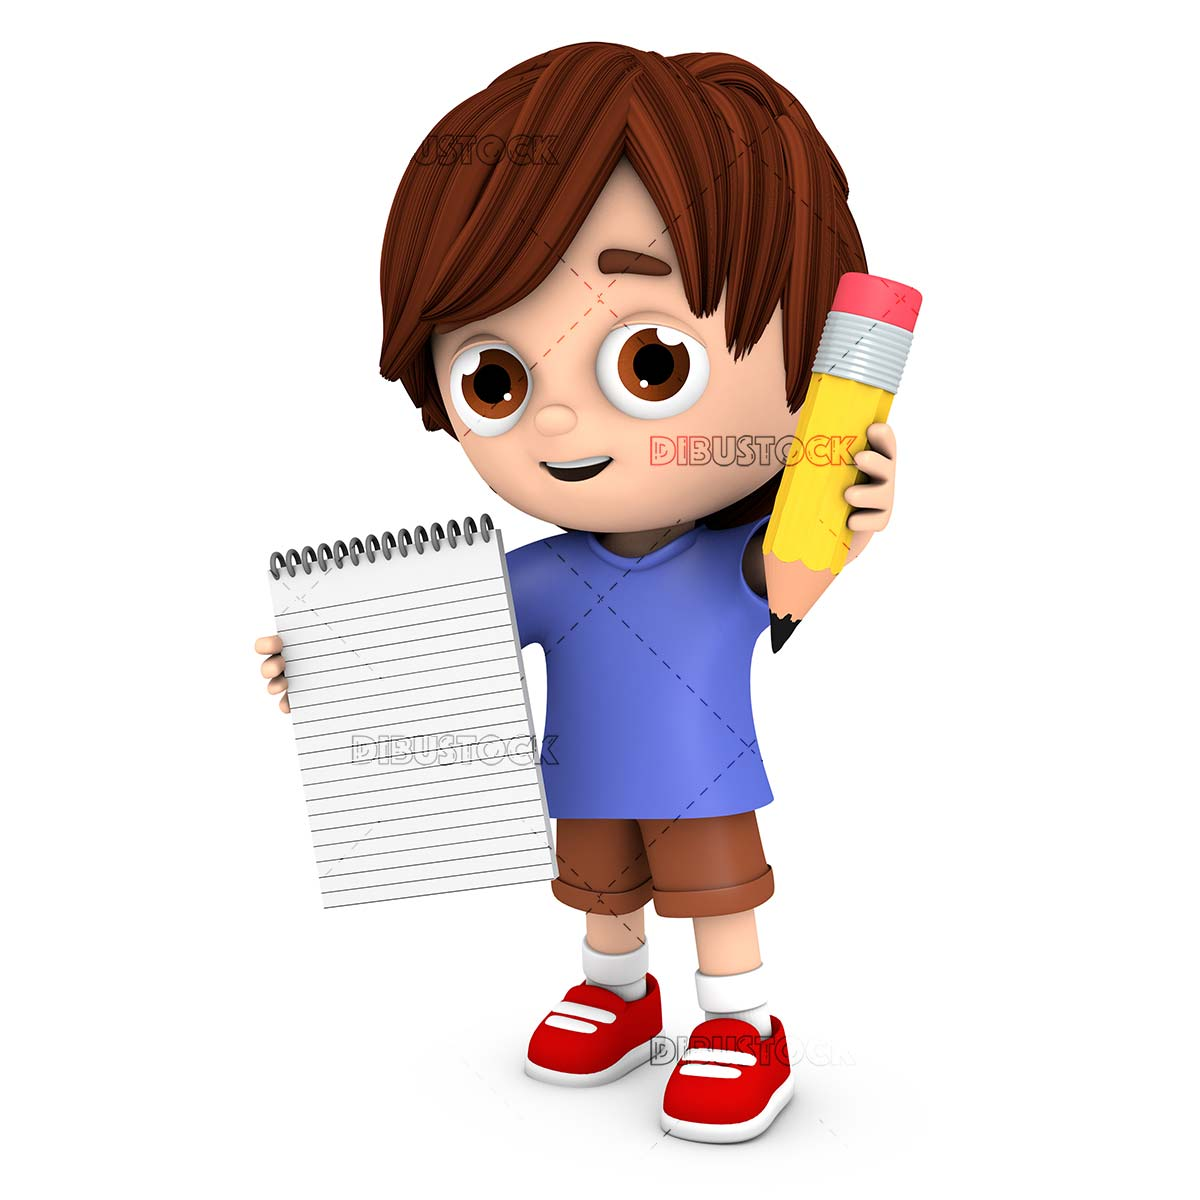 Child with a pencil and a notebook in his hand encouraging to write